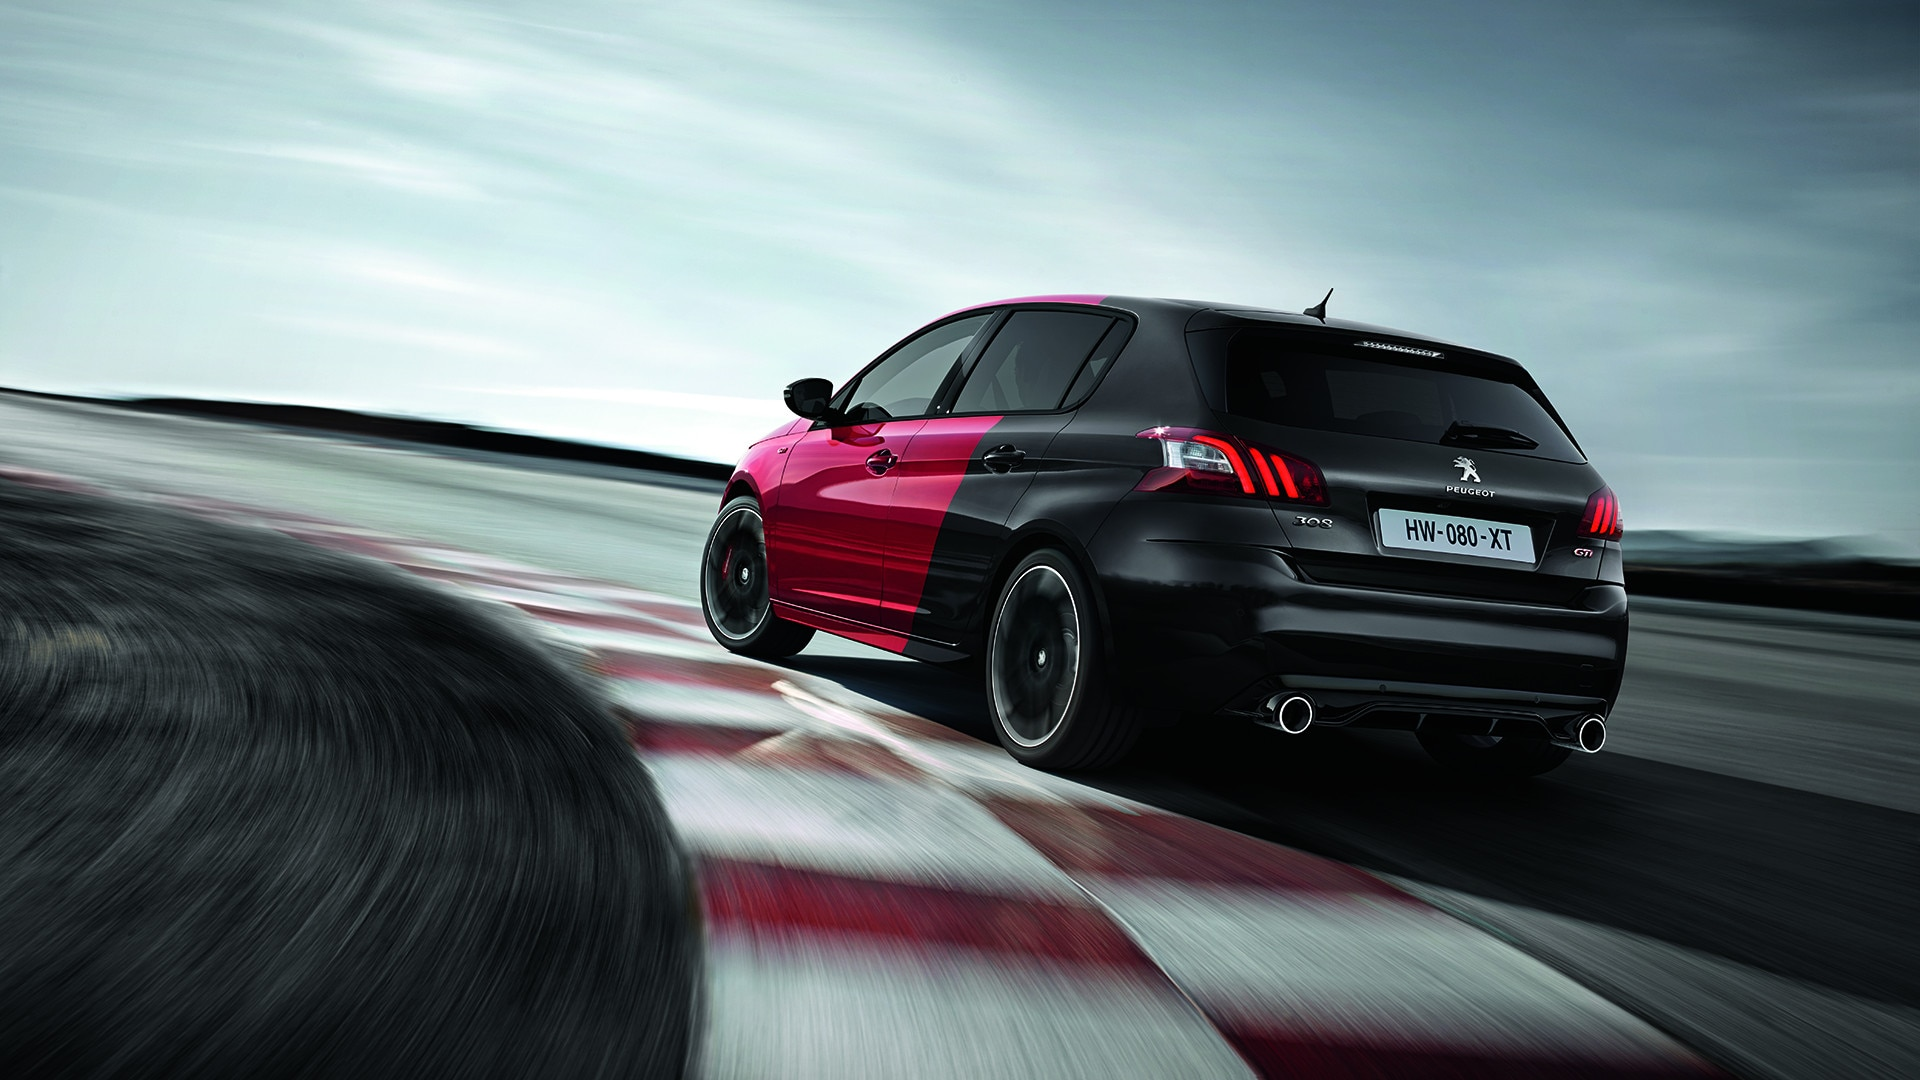 308 gtipeugeot sport: try our new sporty hatchback